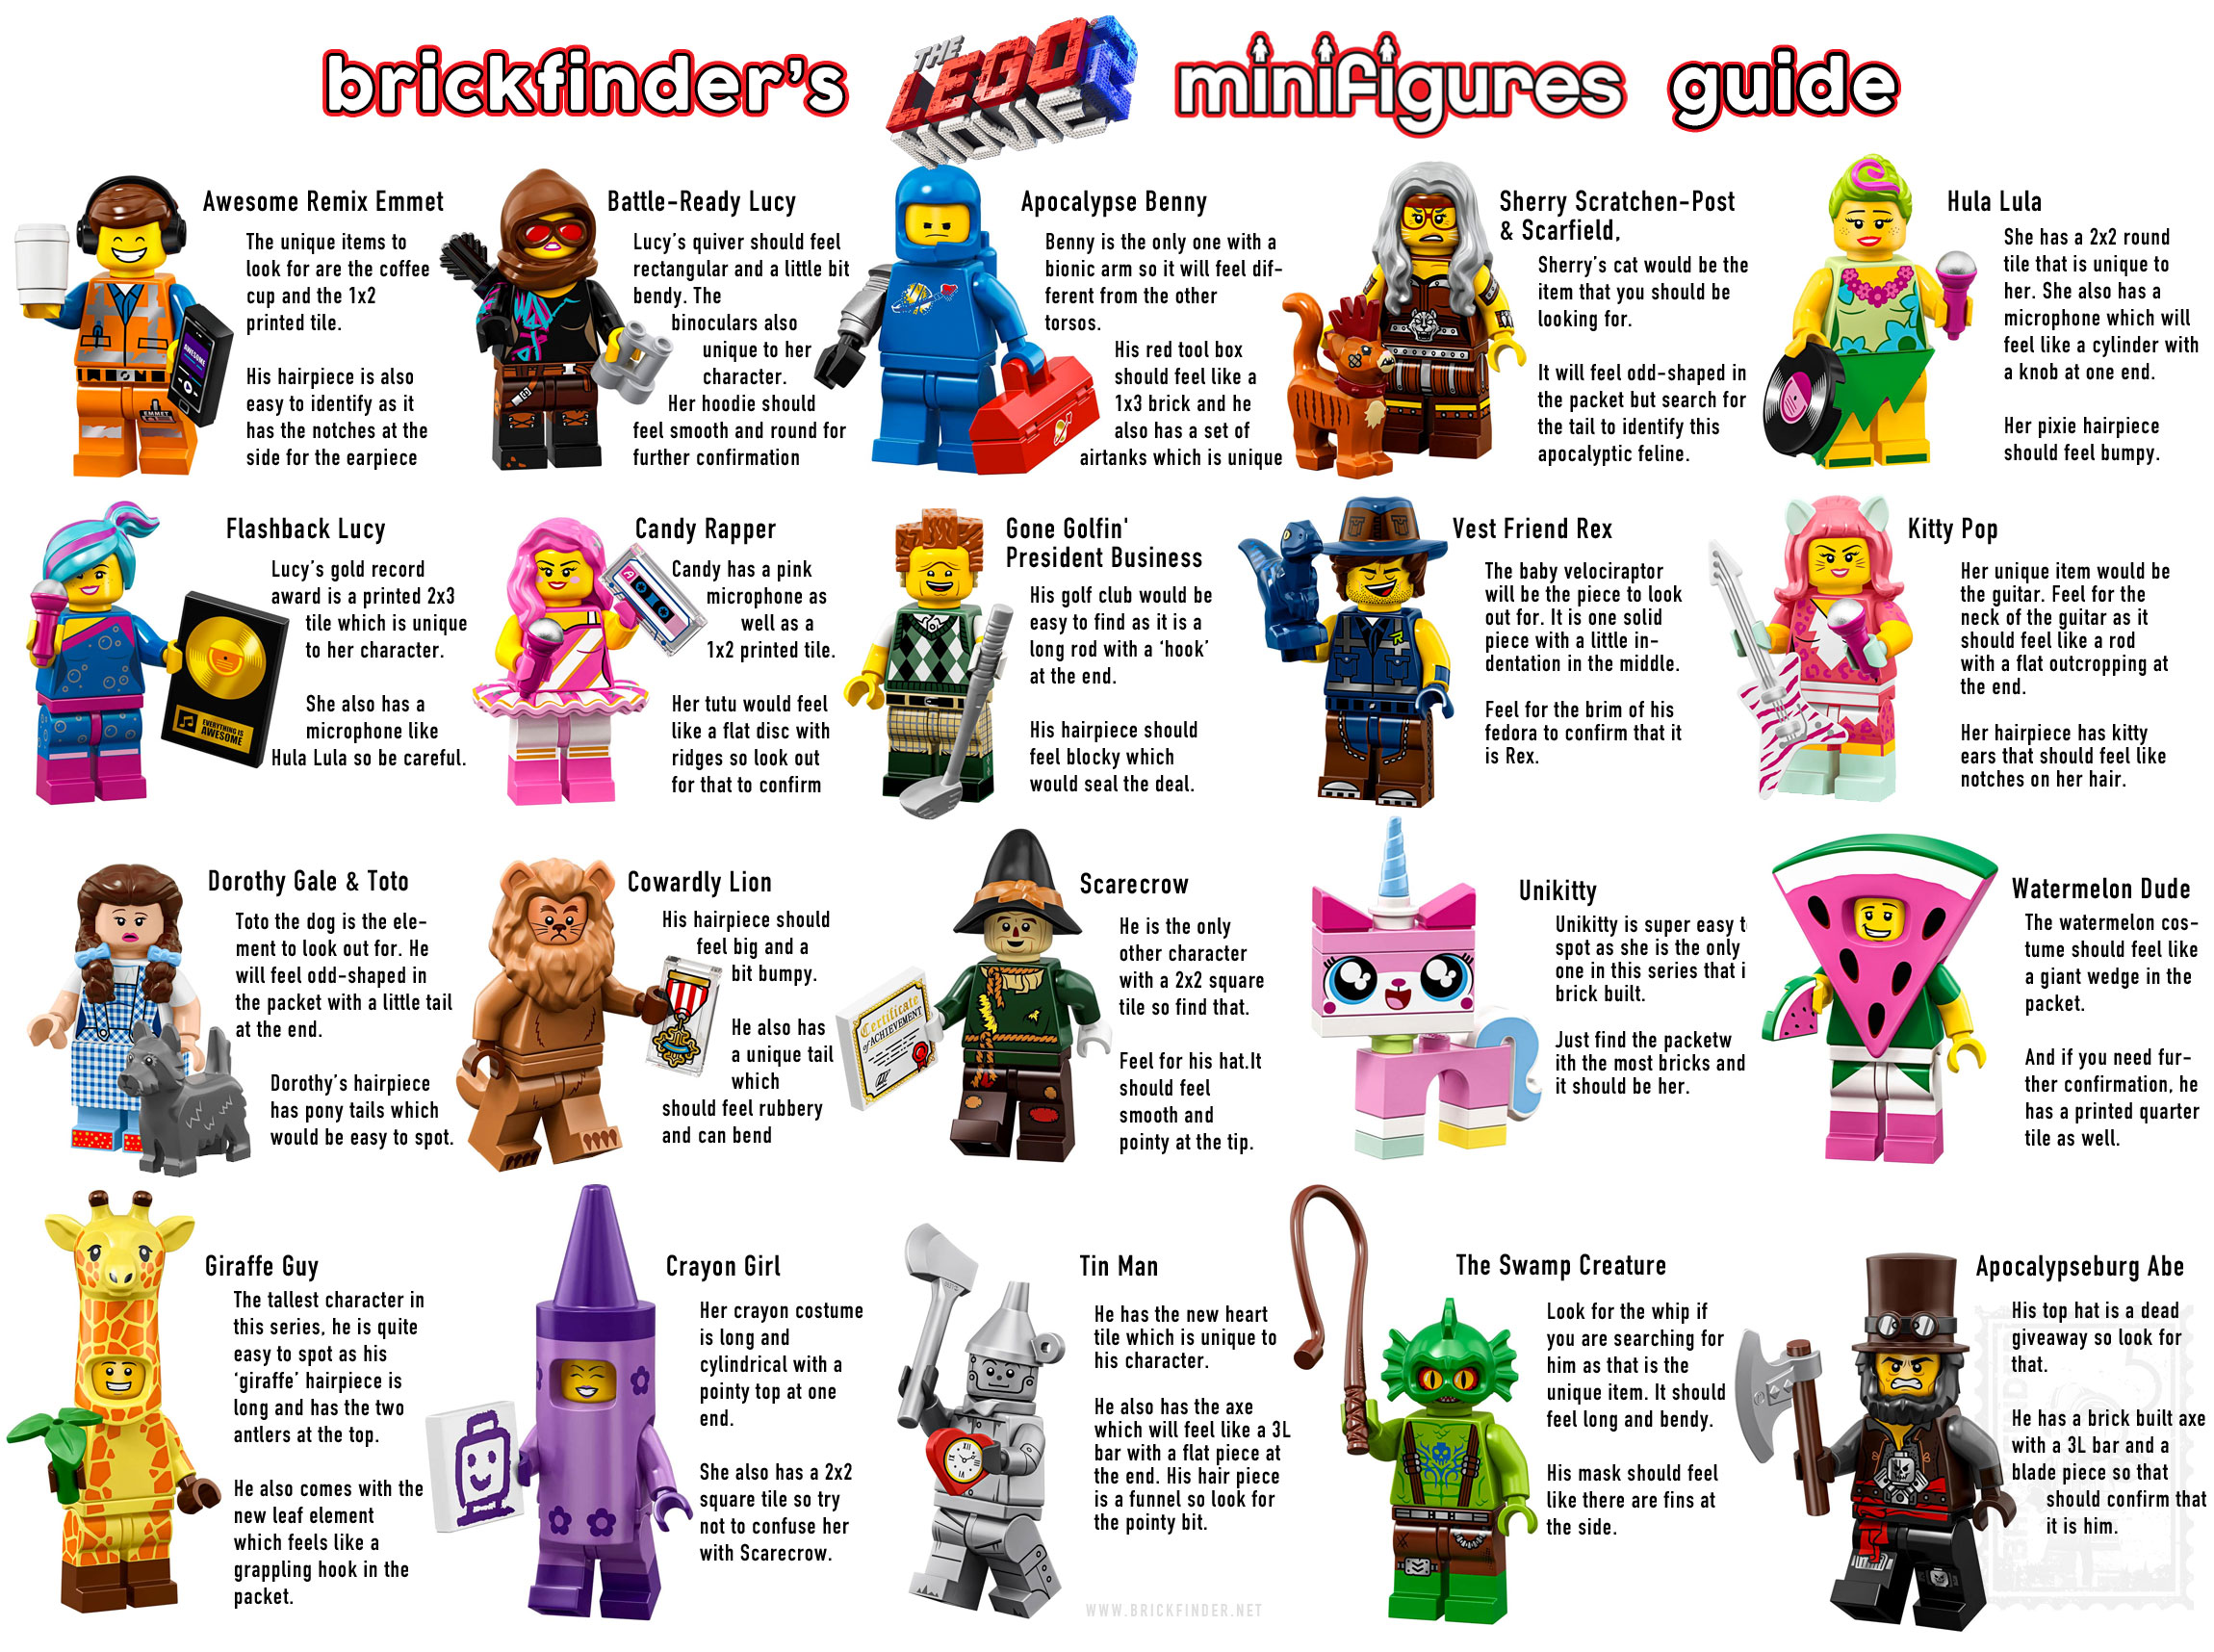 The-LEGO-Movie-2-minifigure-feel-guide-2